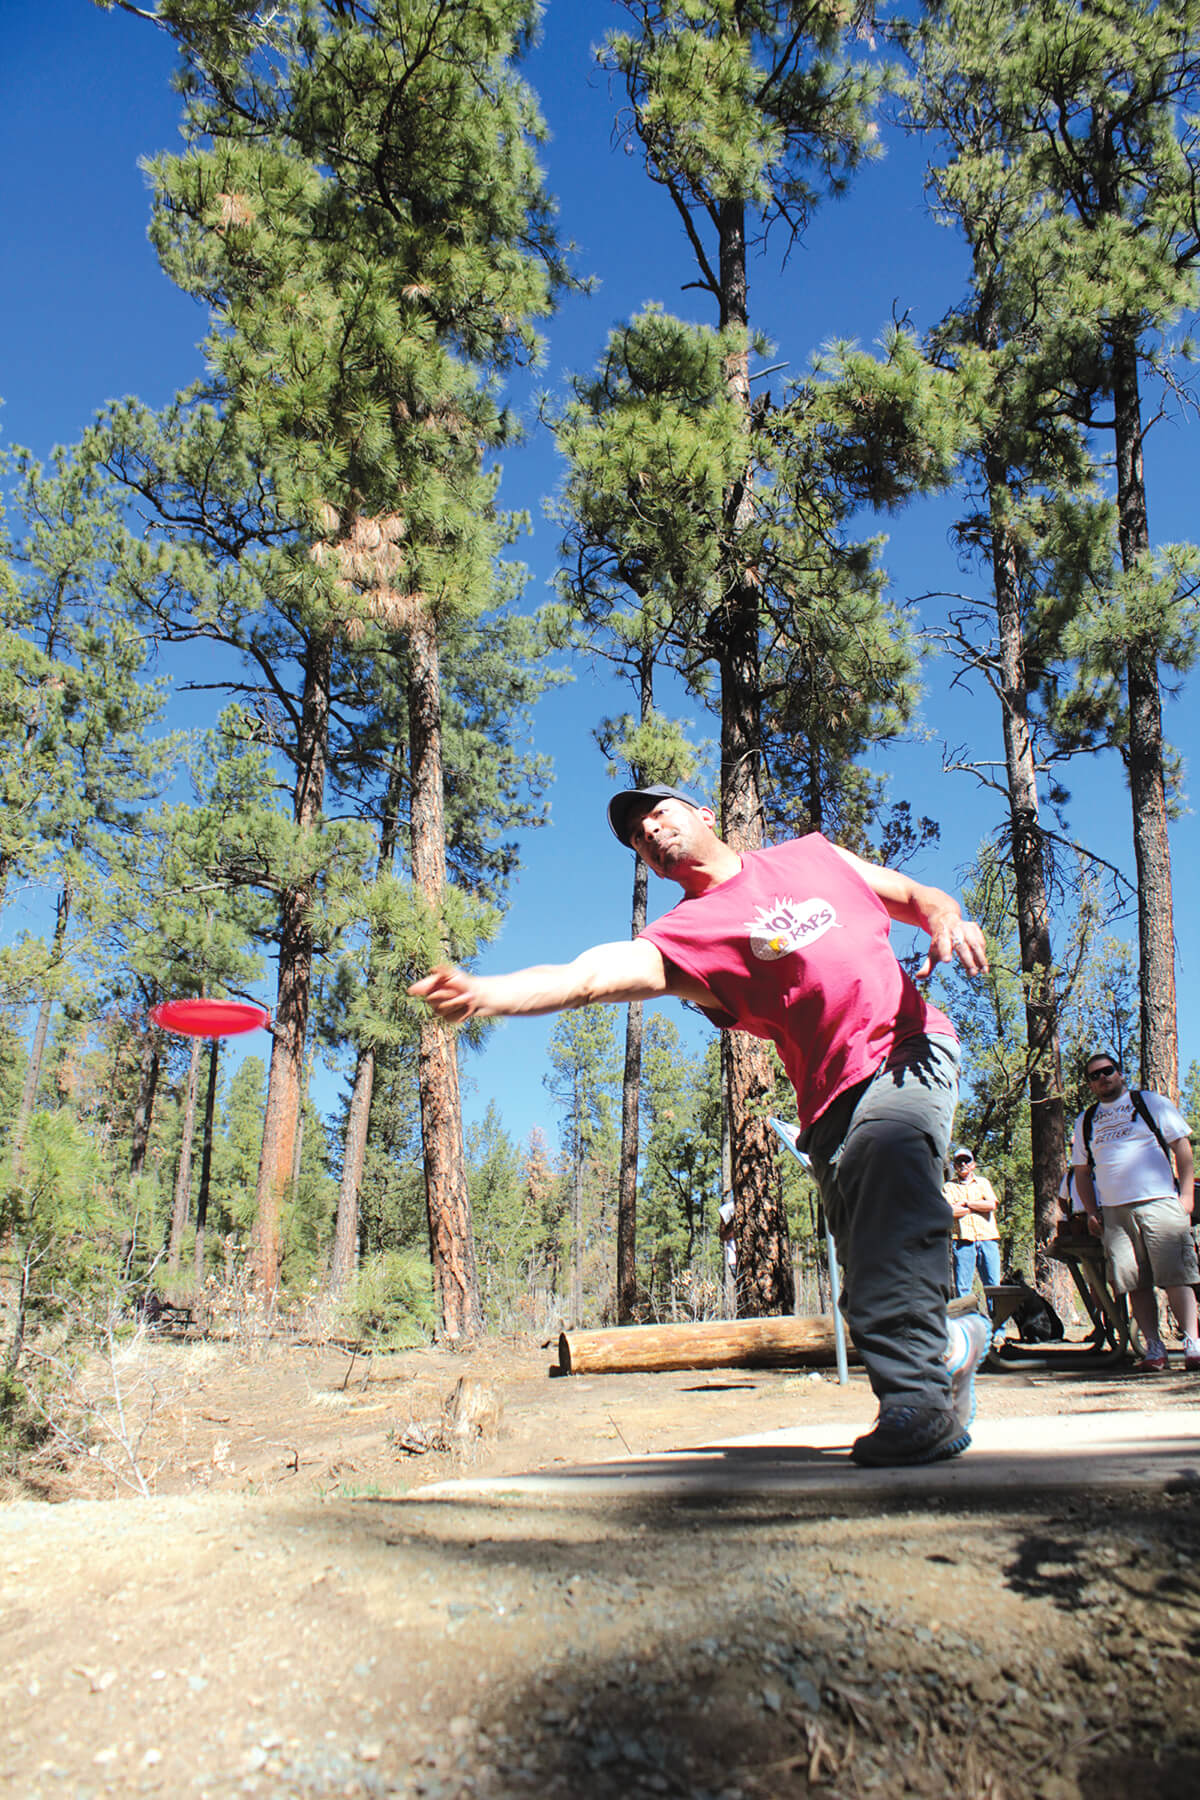 Disc golf at Grindstone Lake is one of the top unique and offbeat outdoor activities in Ruidoso, New Mexico